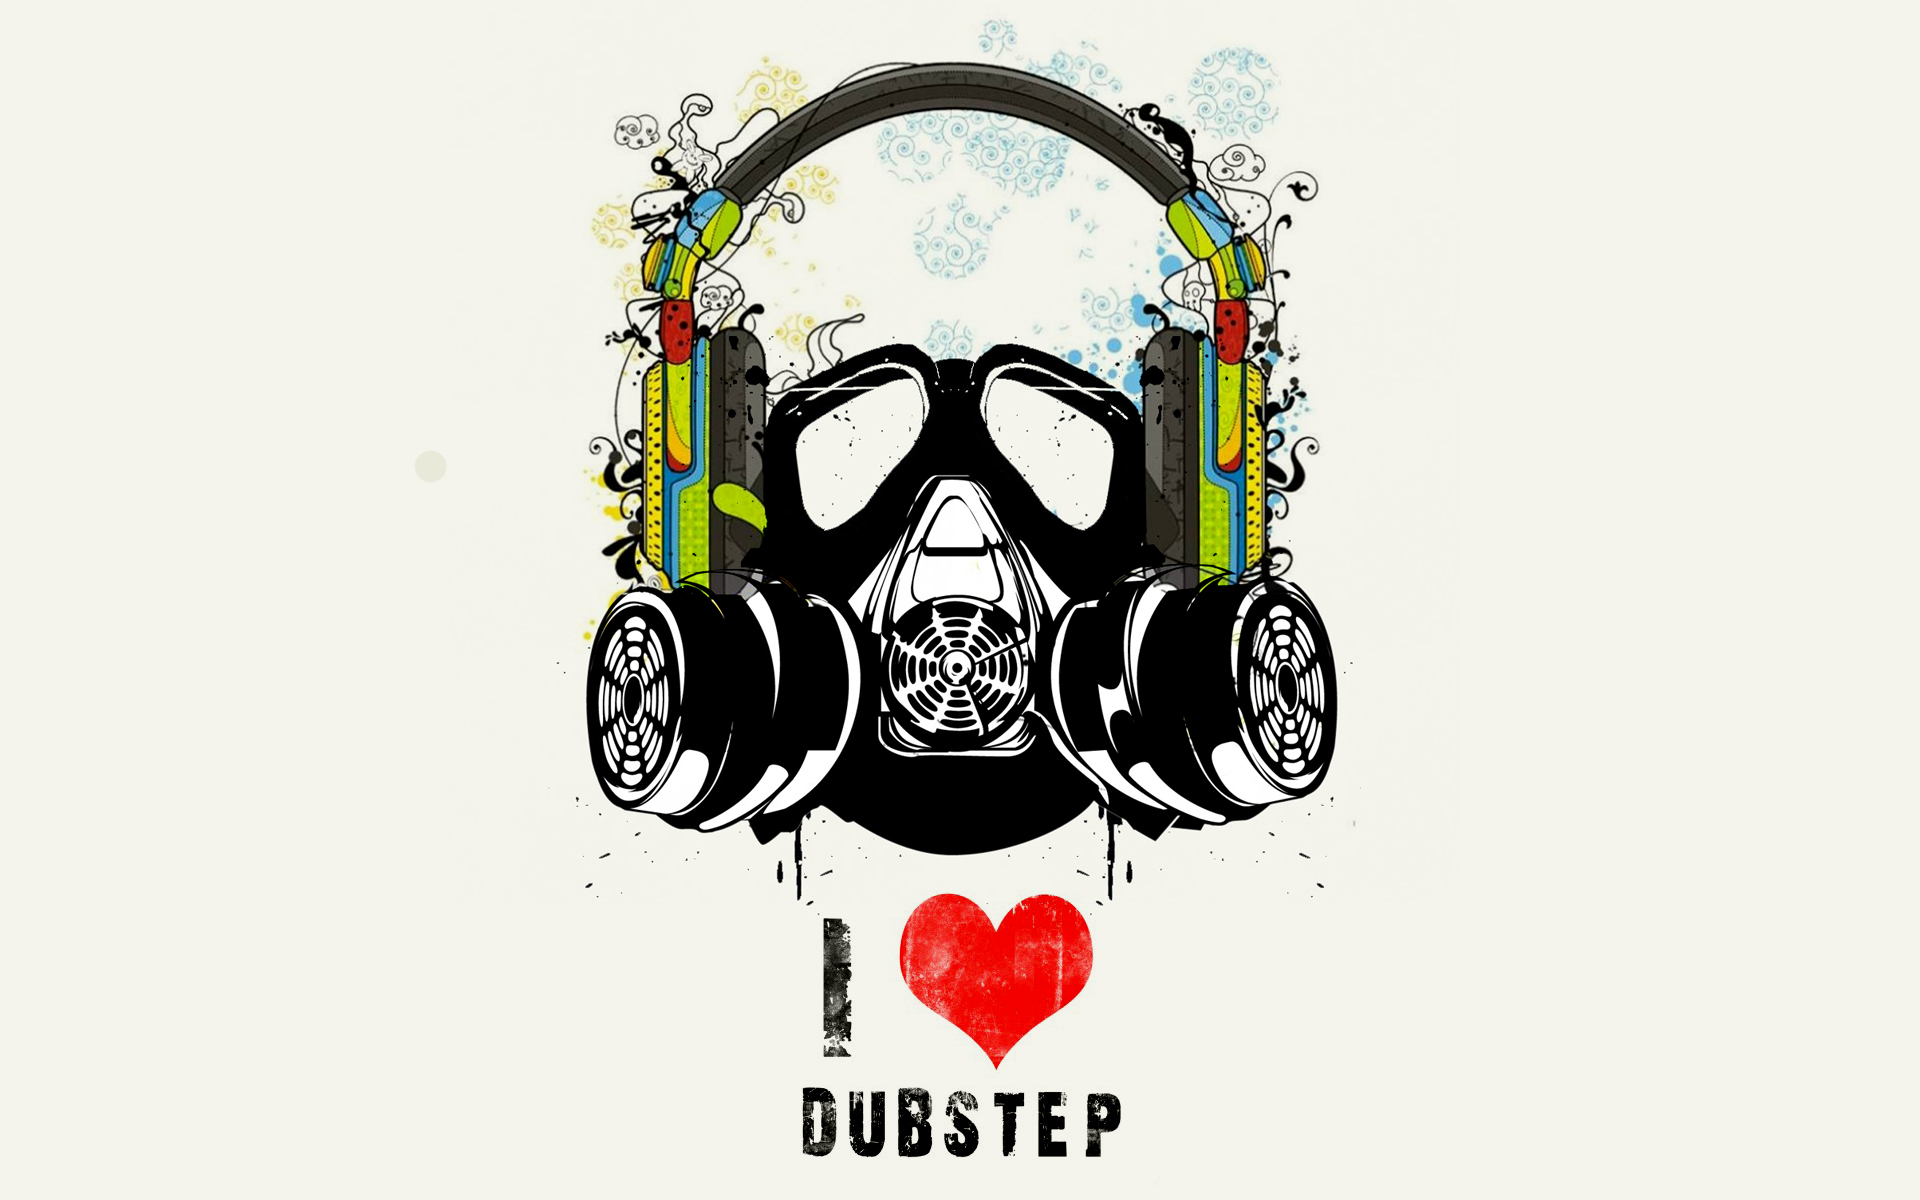 Dubstep wallpaper by FlegmaUcigasa Dubstep wallpaper by FlegmaUcigasa